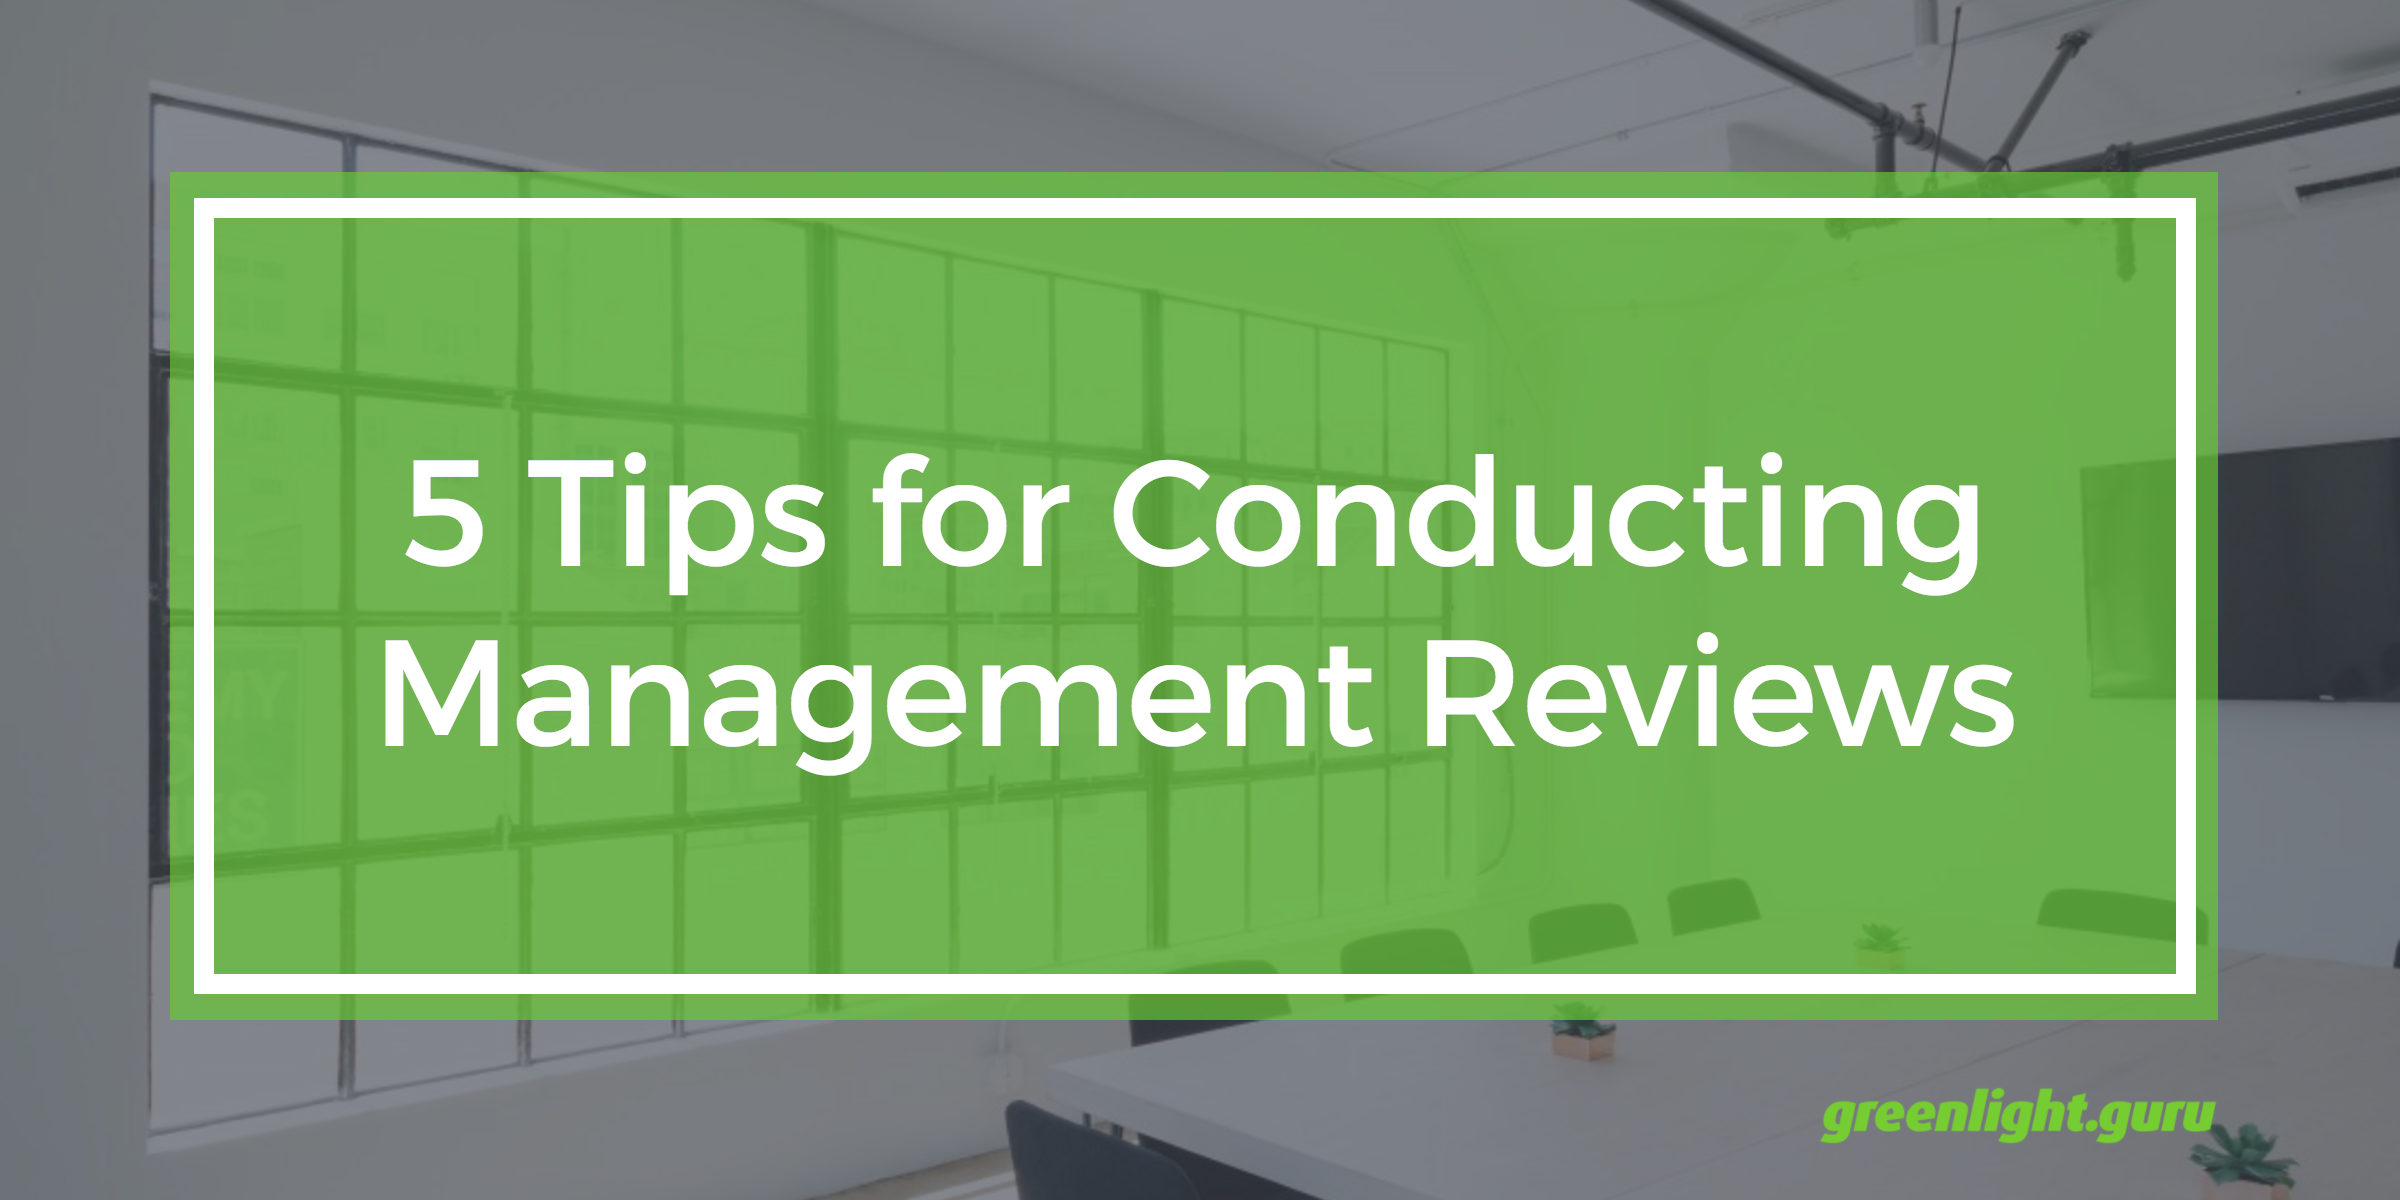 5 Tips for Conducting Management Reviews - Featured Image